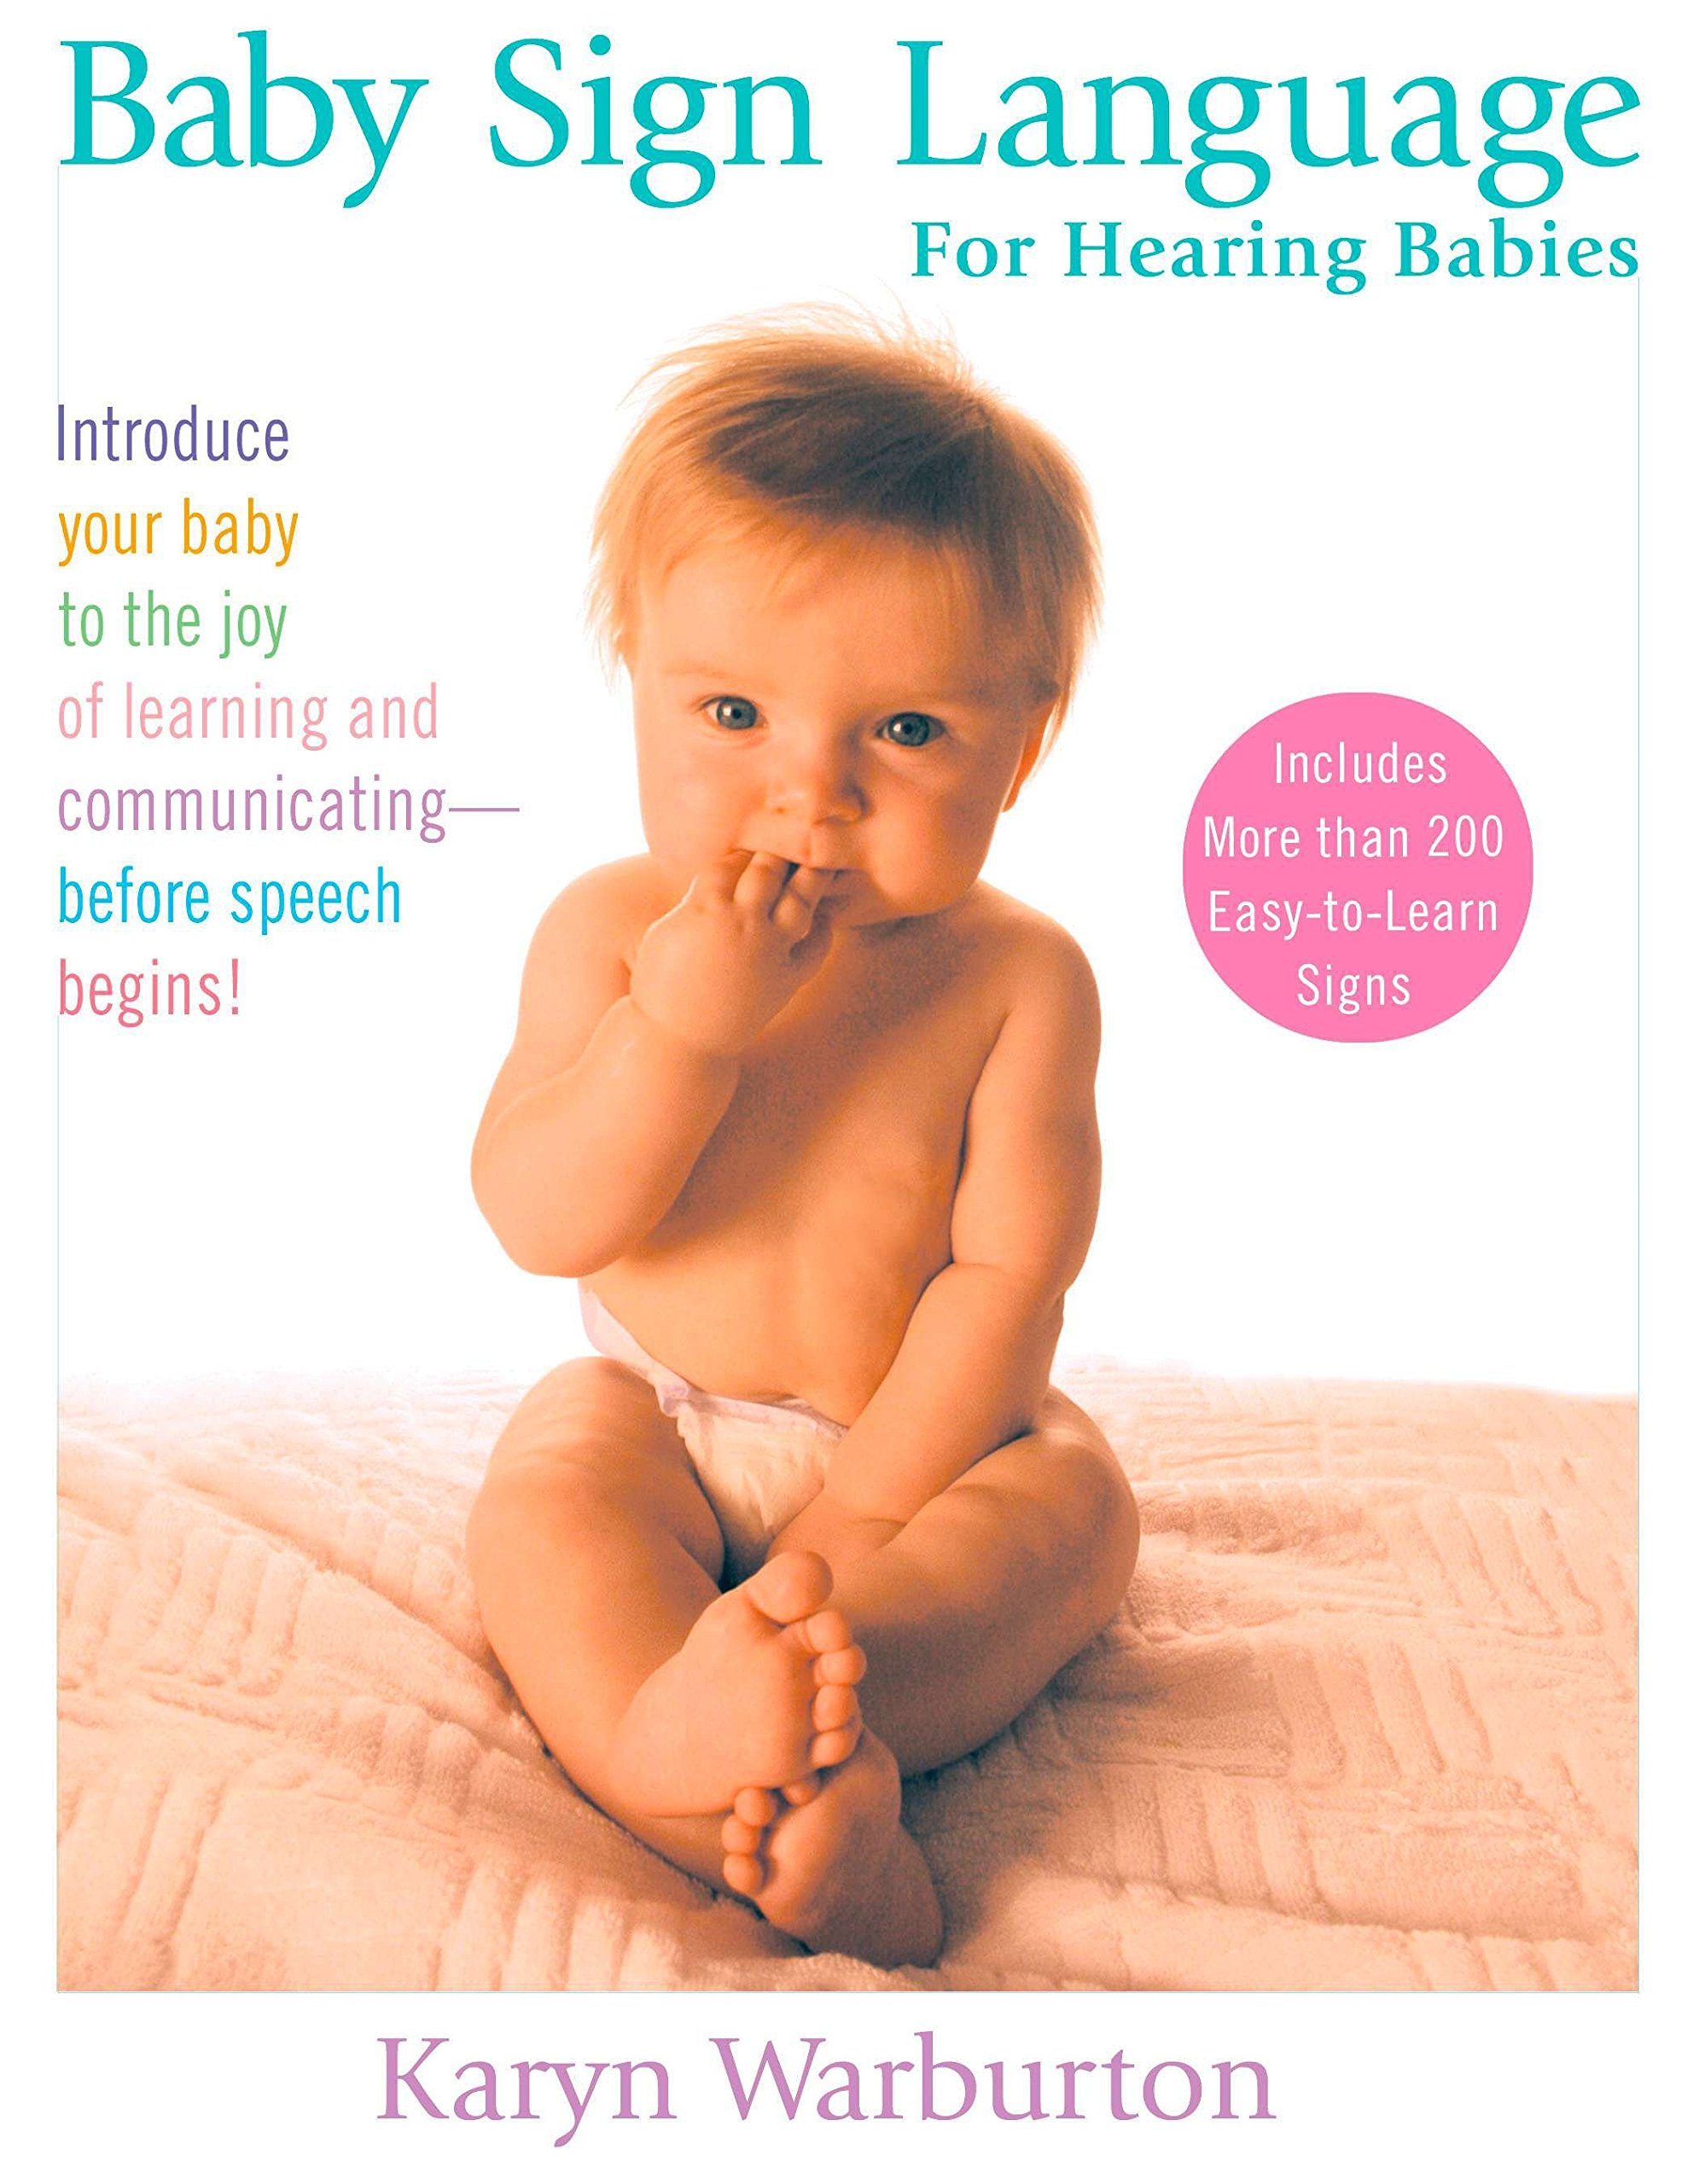 Baby Sign Language: For Hearing Babies by TarcherPerigee